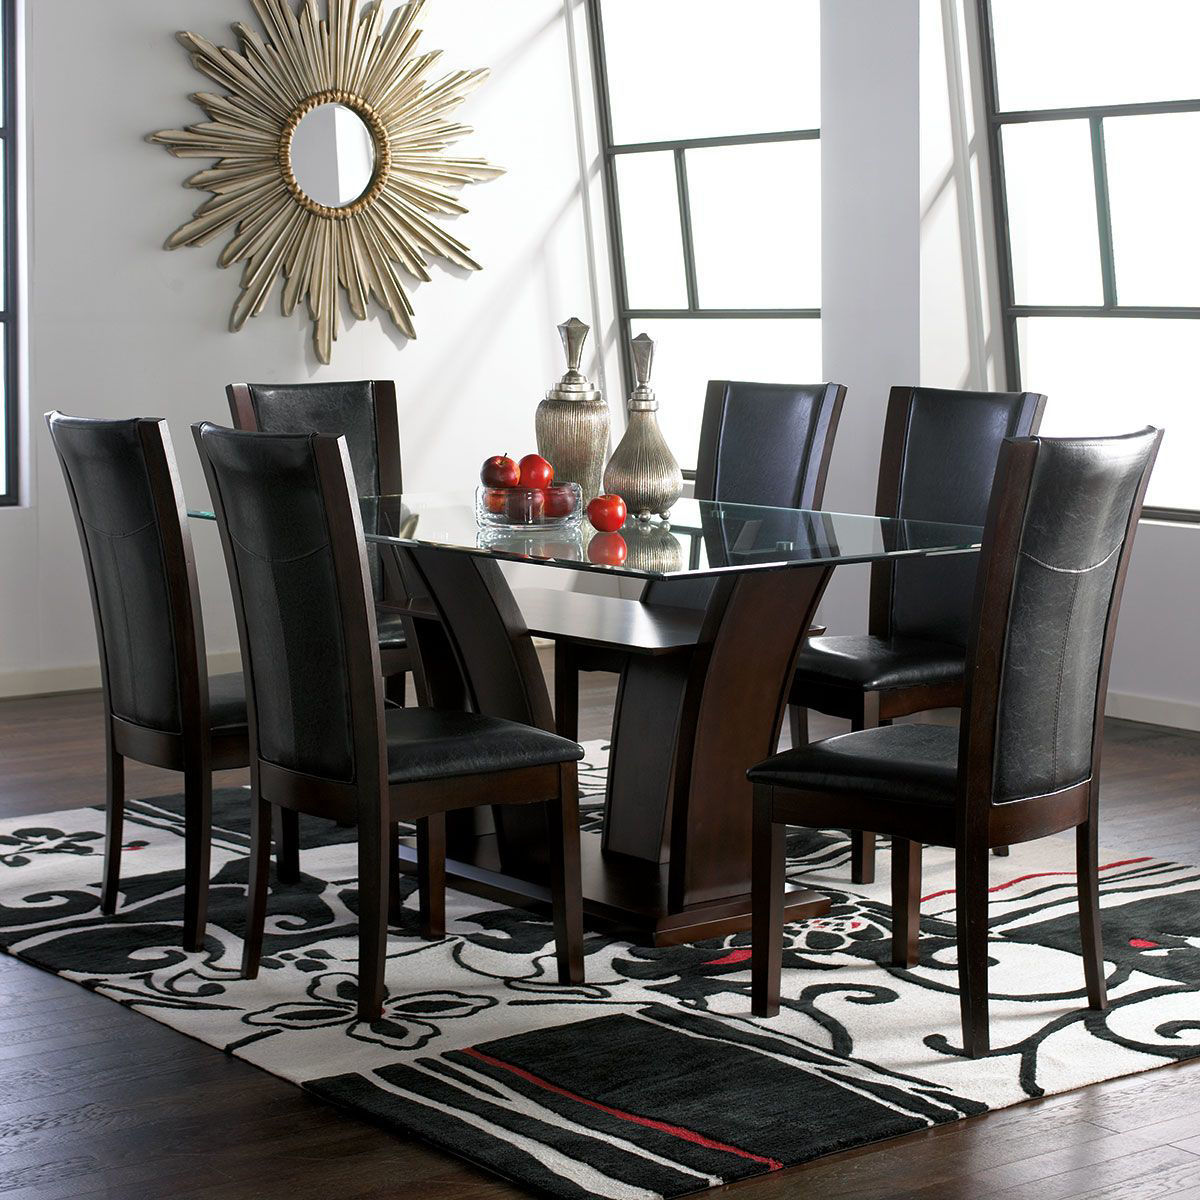 Tory 5 Piece Dining Set Badcock Home Furniture More